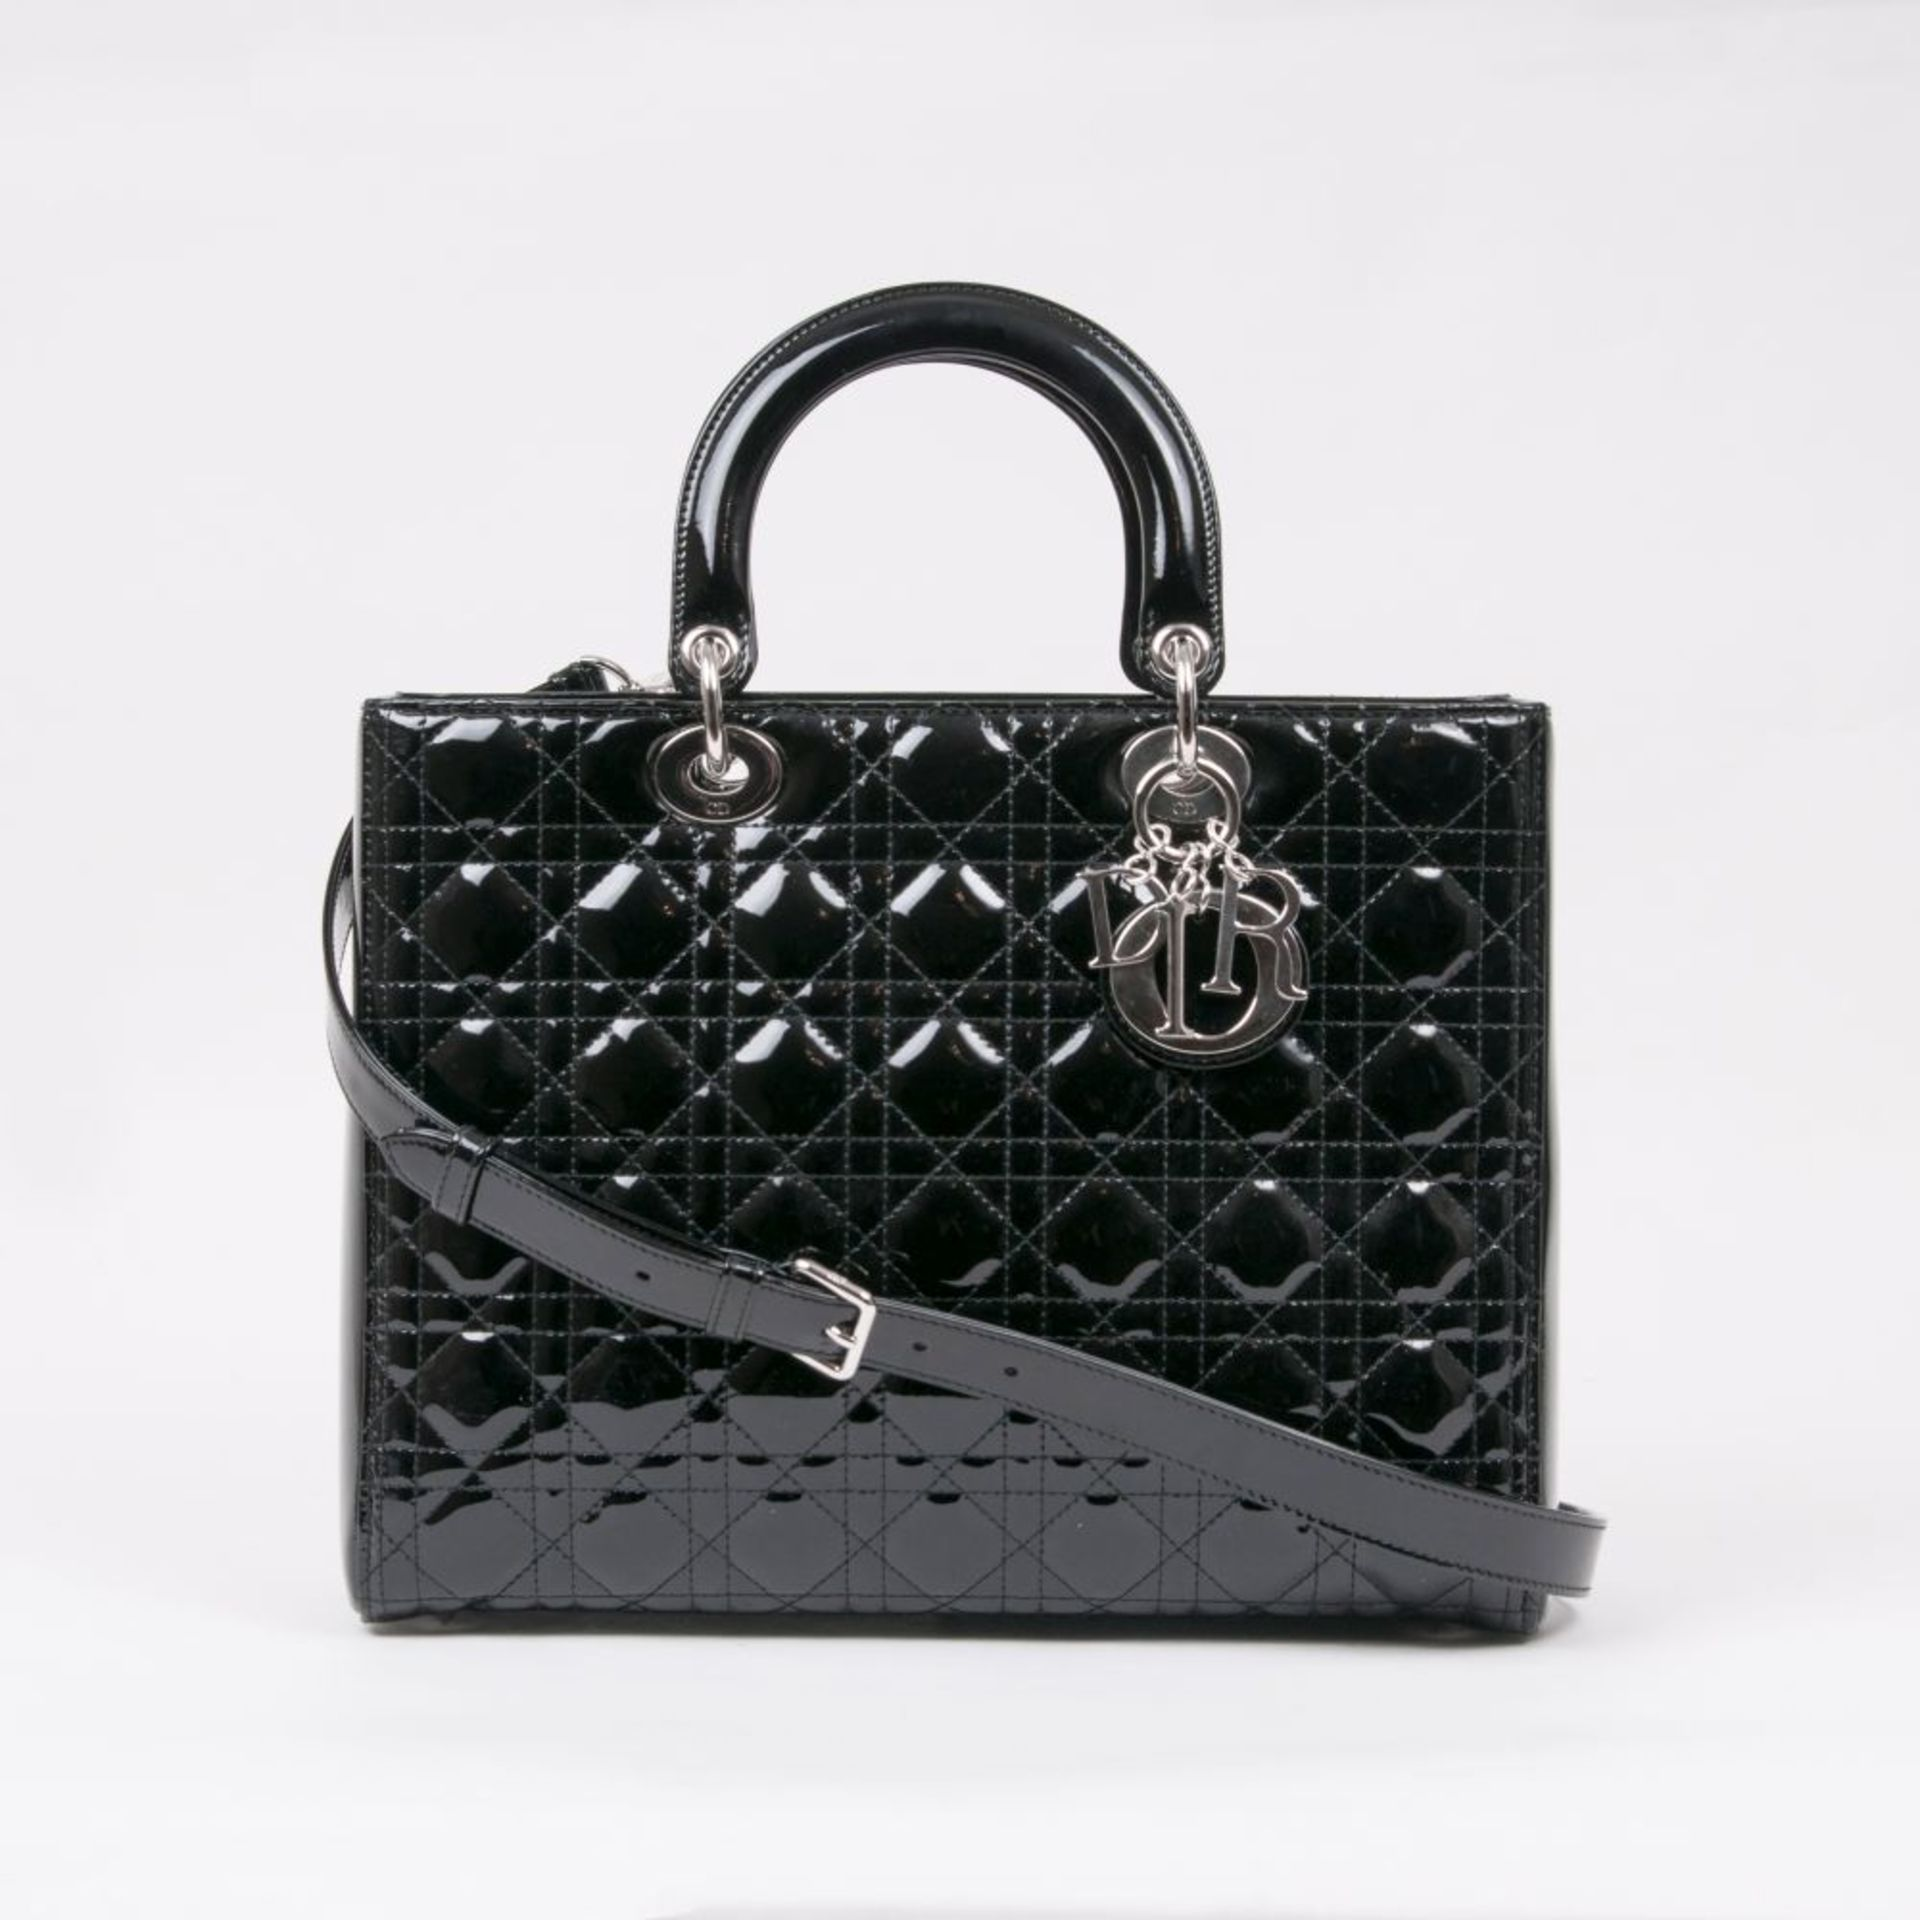 Christian Dior. Lady Dior Bag Black.